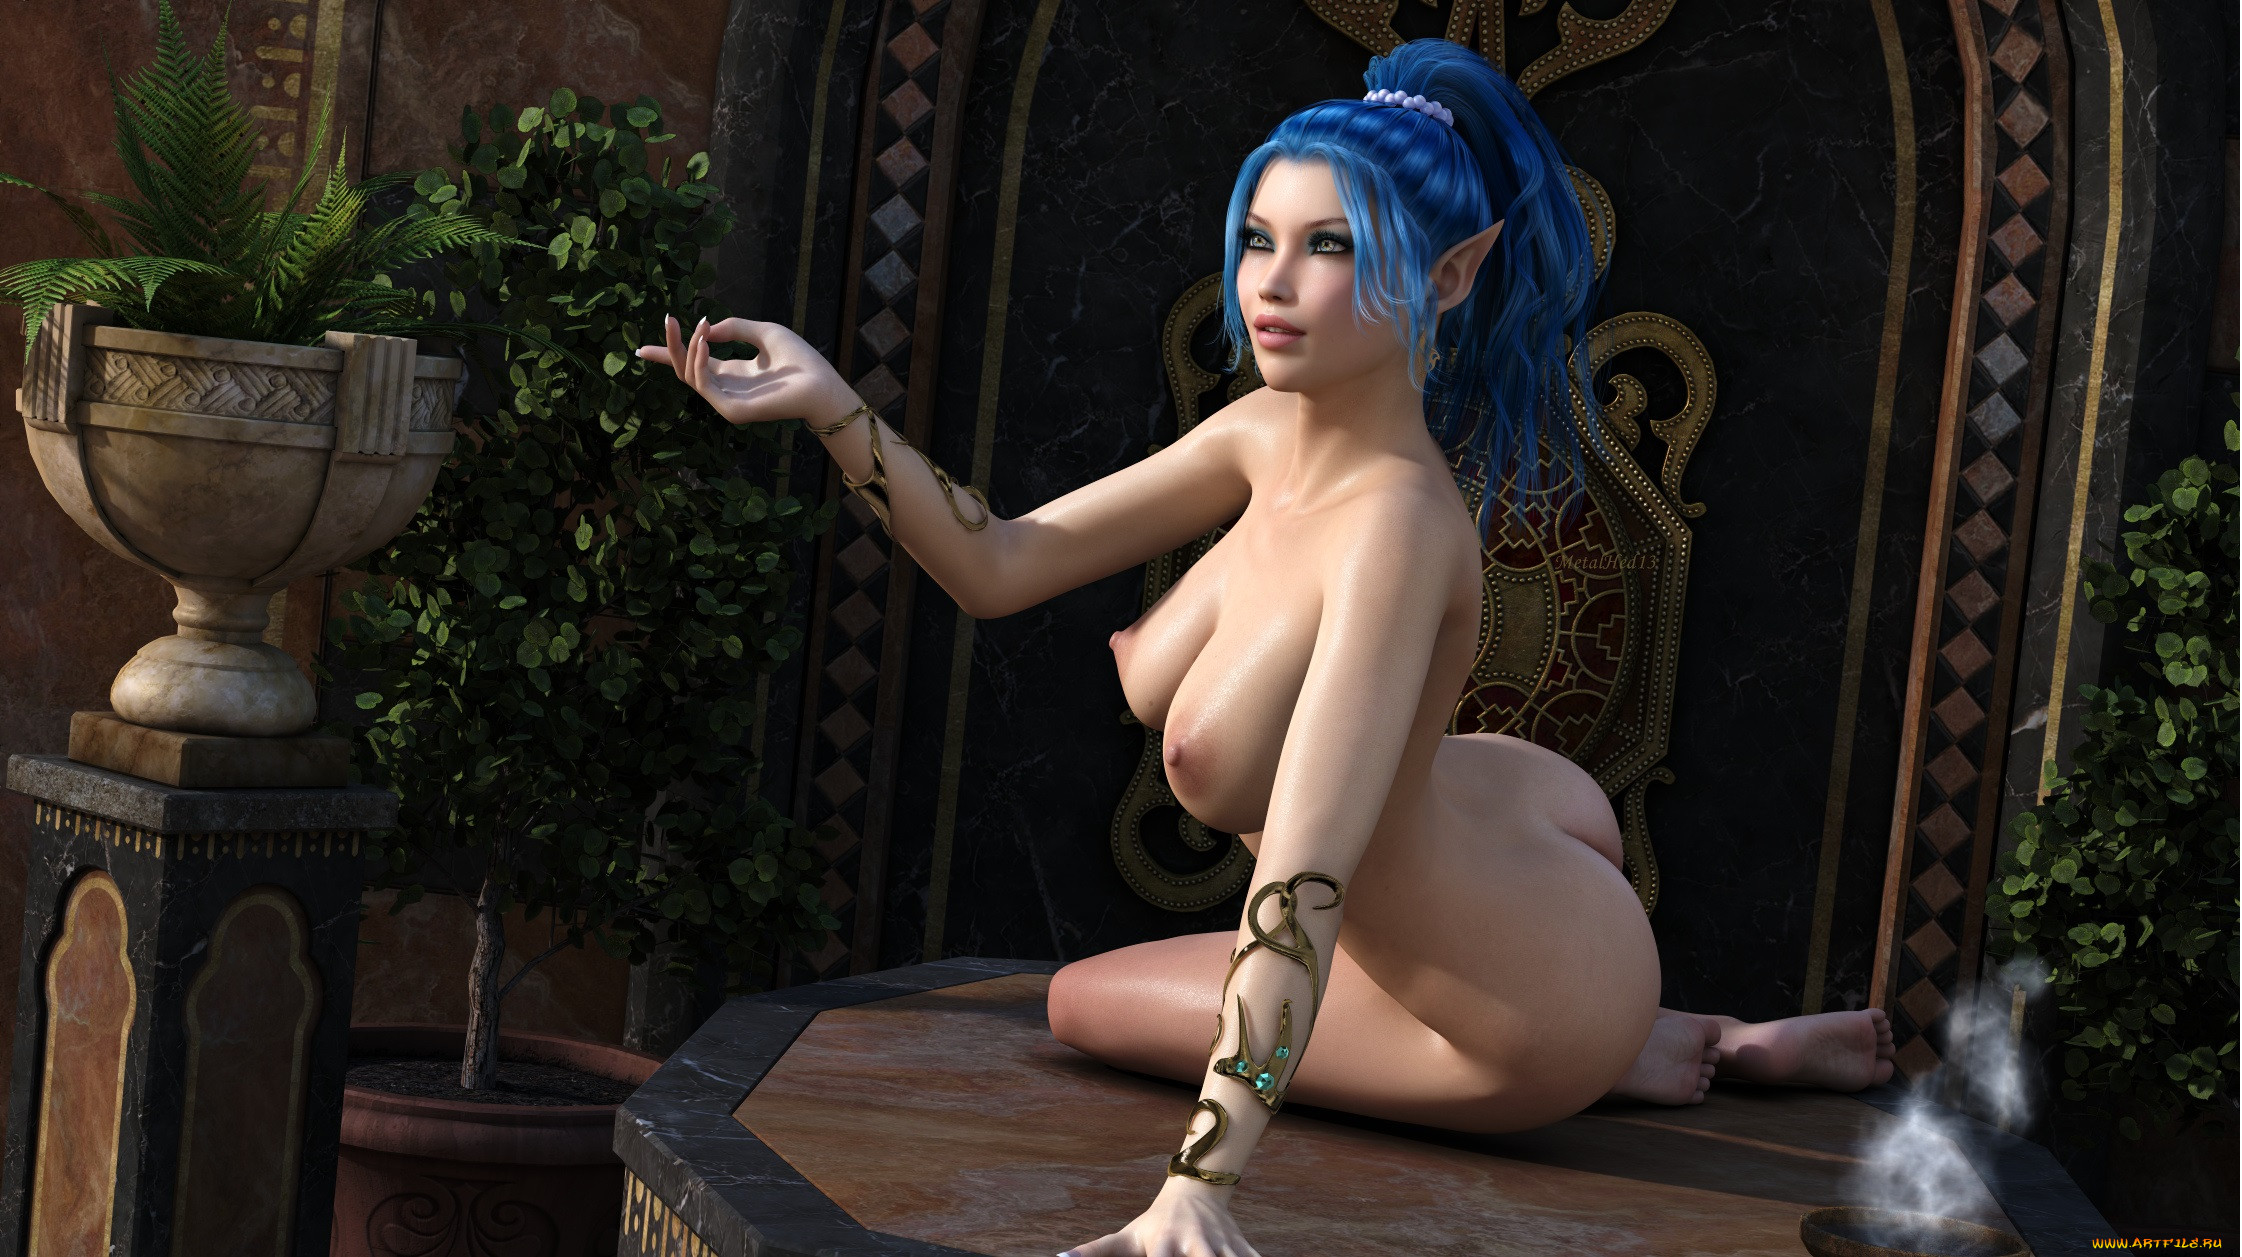 Fantasy sexy 3-dimensional art naked download